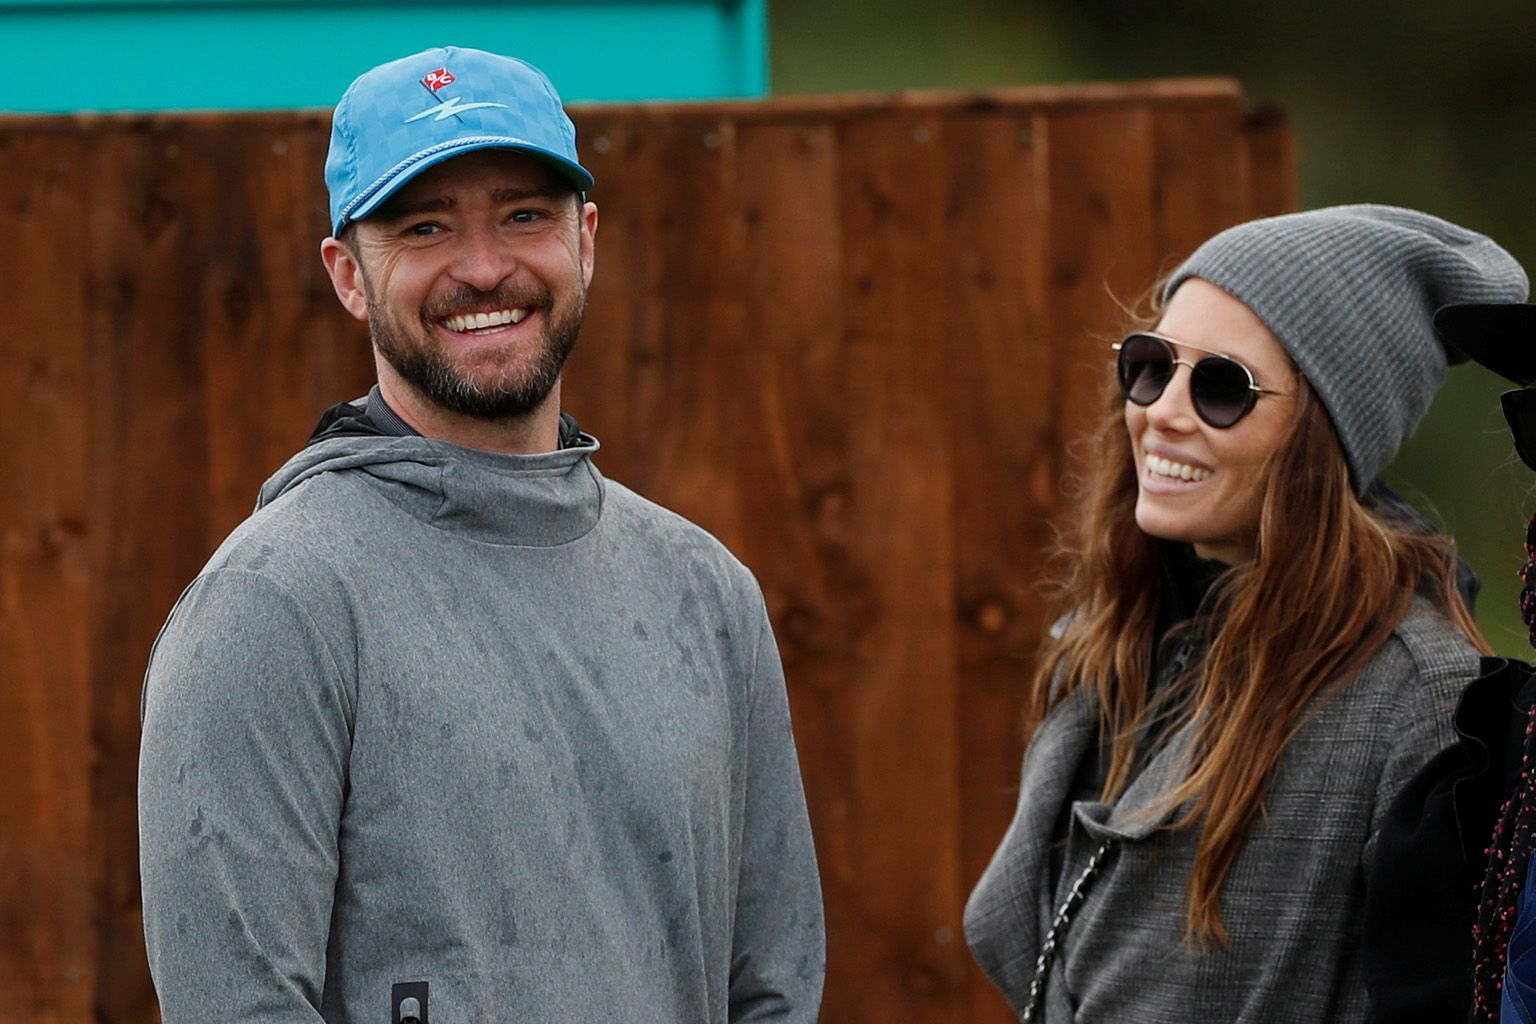 Singer Justin Timberlake and actress Jessica Biel have been married for seven years and they are considered one of the most loving couples in Hollywood.